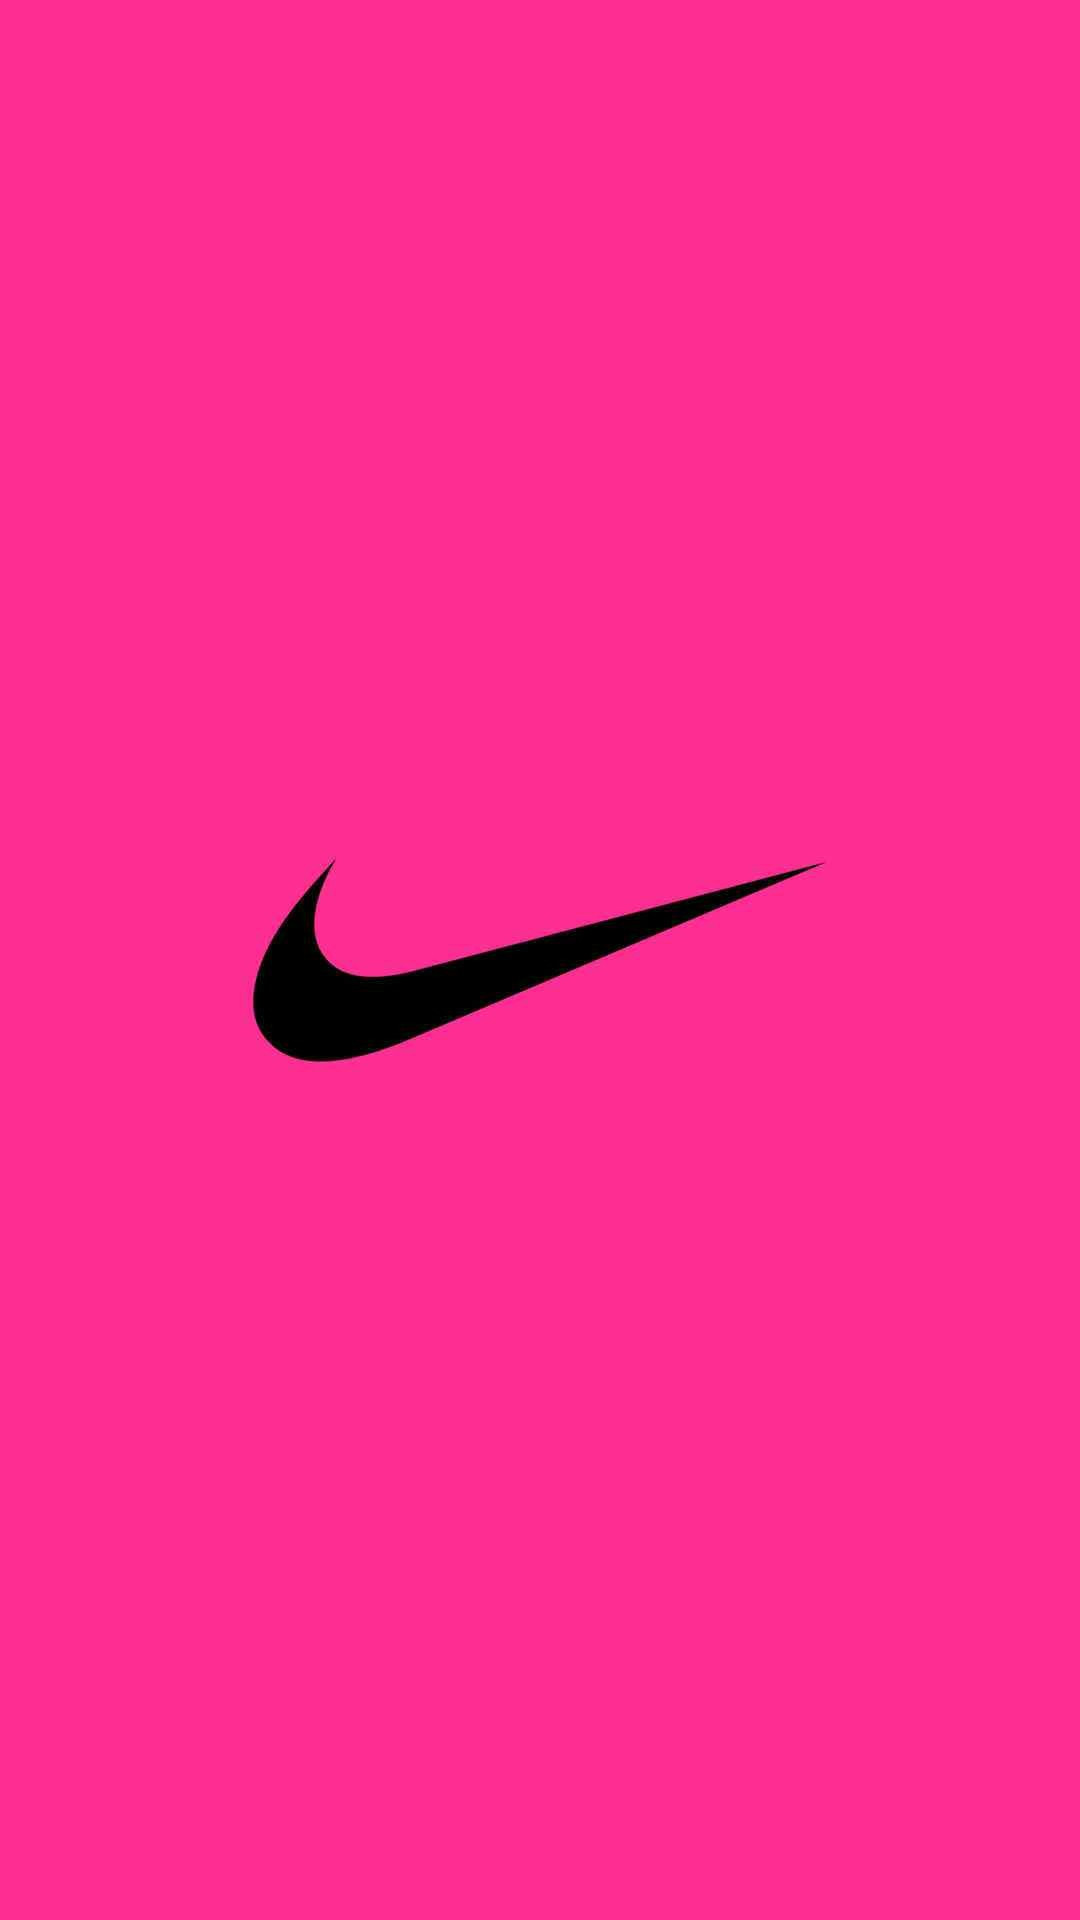 Nike Wallpaper for iPhone (79+ images)